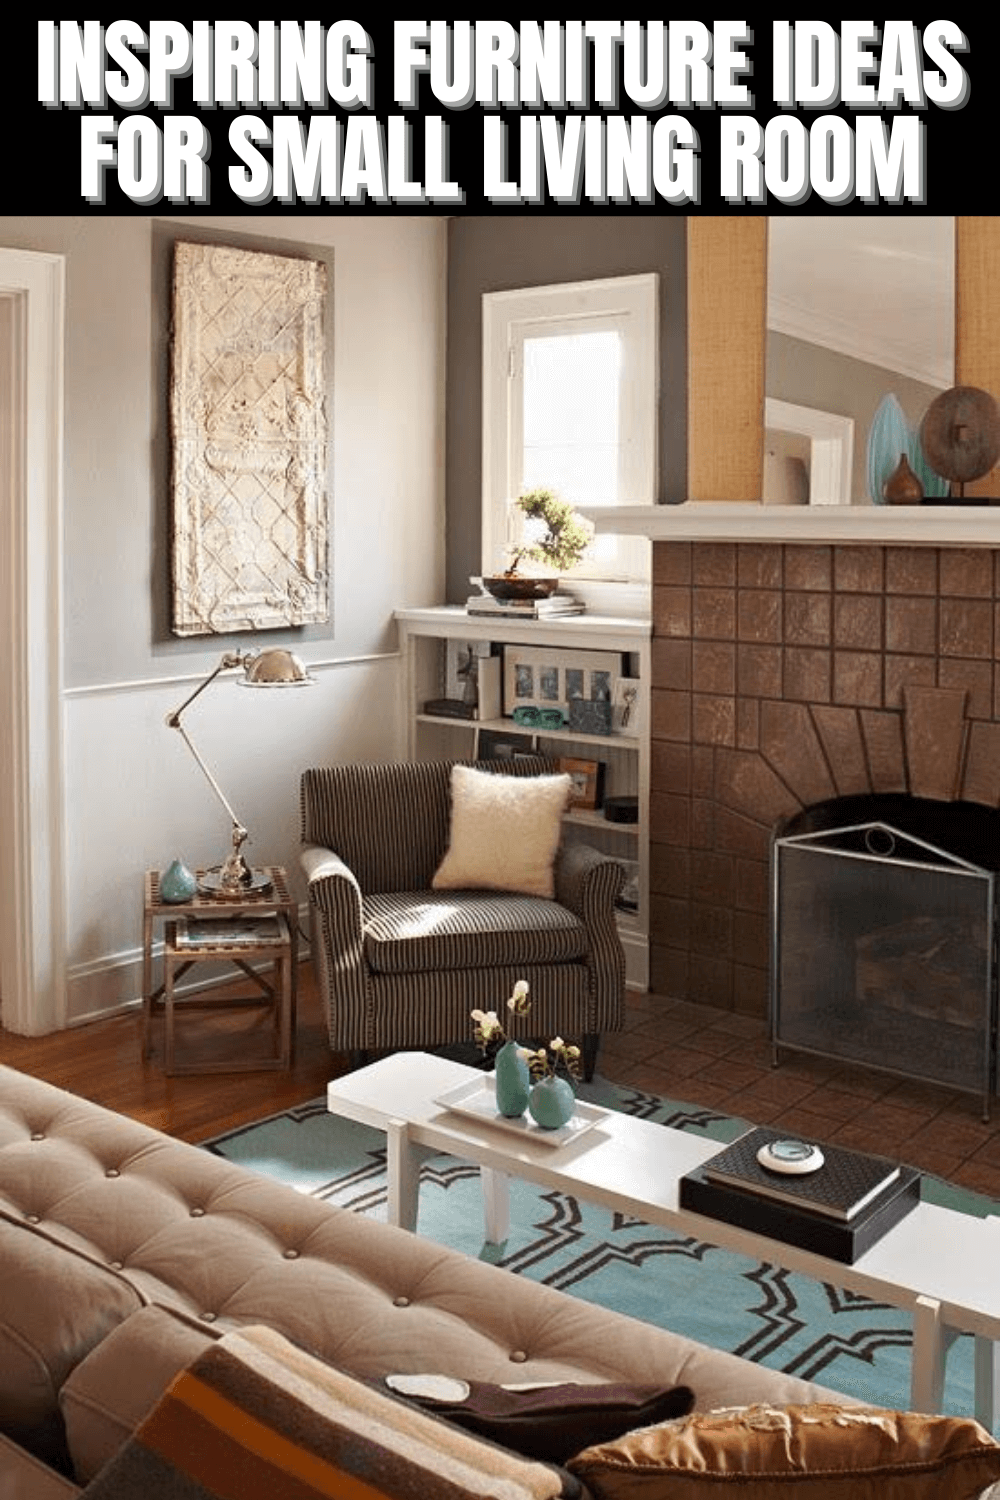 Best Small House Living Room Furniture Ideas Small House Tips In 2020 Small Living Rooms Small Living Room Furniture Small Space Living Room #small #living #room #furniture #layout #ideas